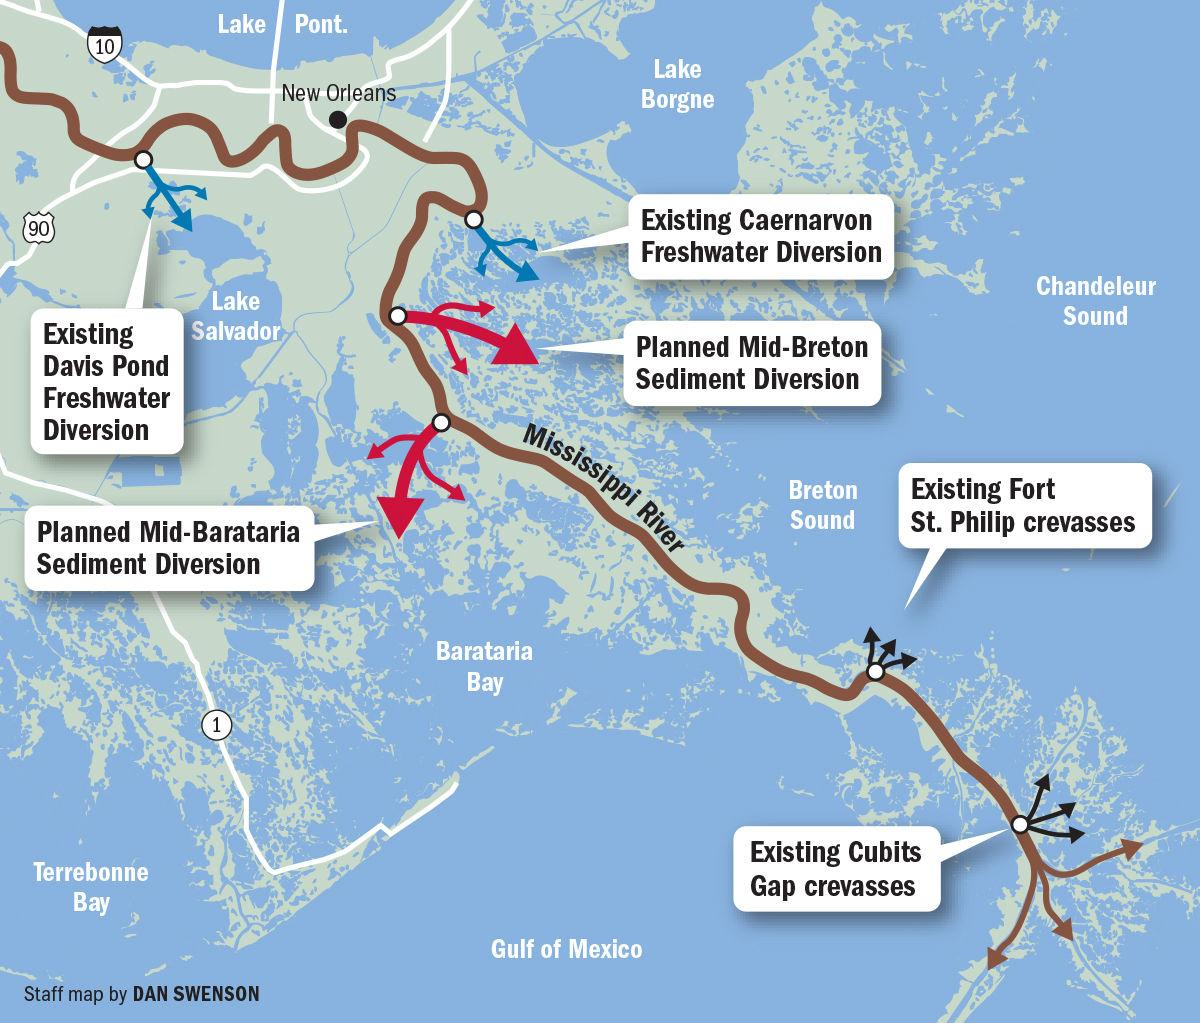 Louisiana Mississippi River diversions and crevasses map